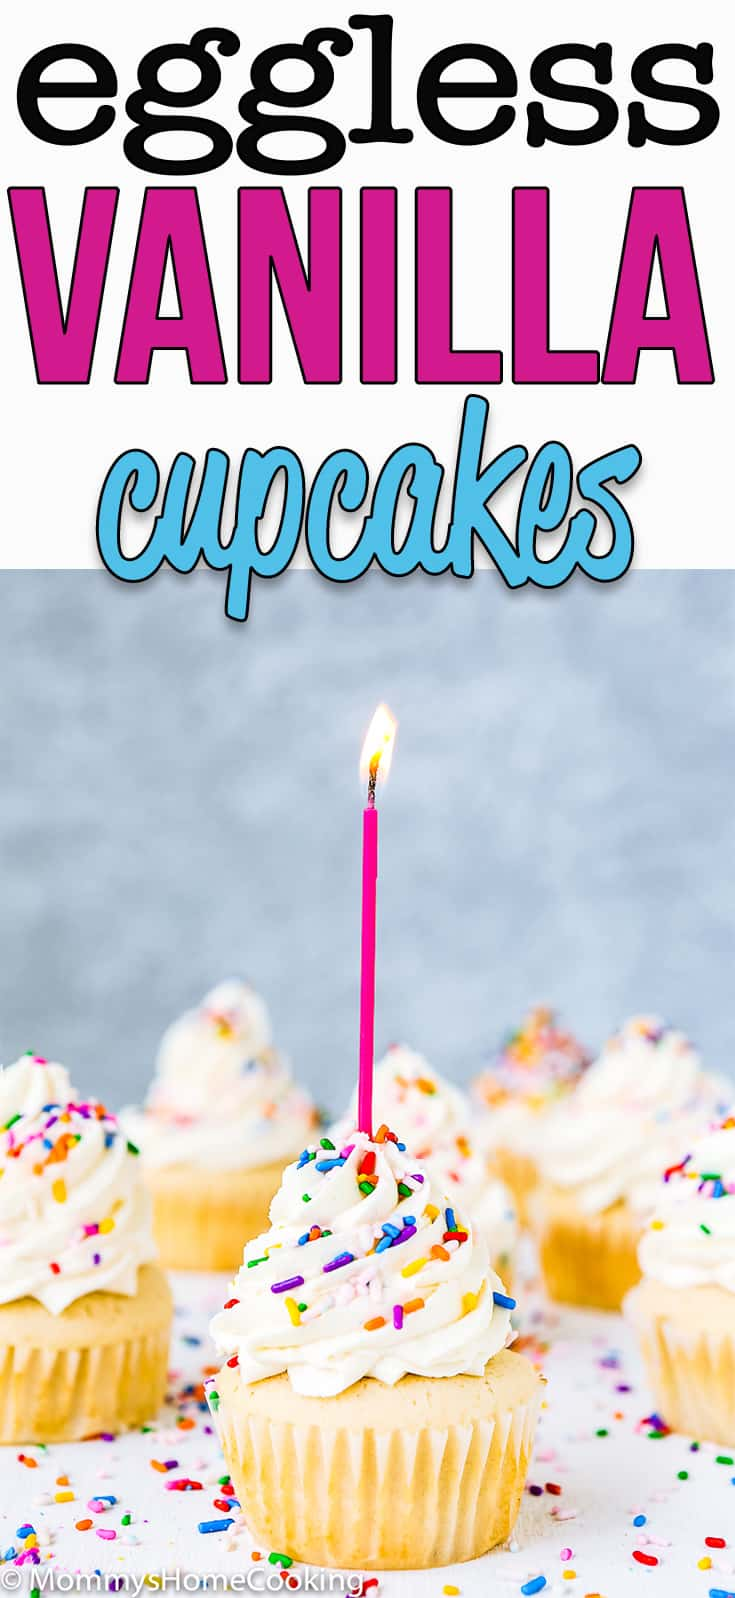 These fluffy and moist Eggless Vanilla Cupcakes are super easy to make with just a few ingredients. This is the recipe you have been looking for! #recipe #eggless #eggfree #egglessbaking #cupcakes #vanilla #birthday